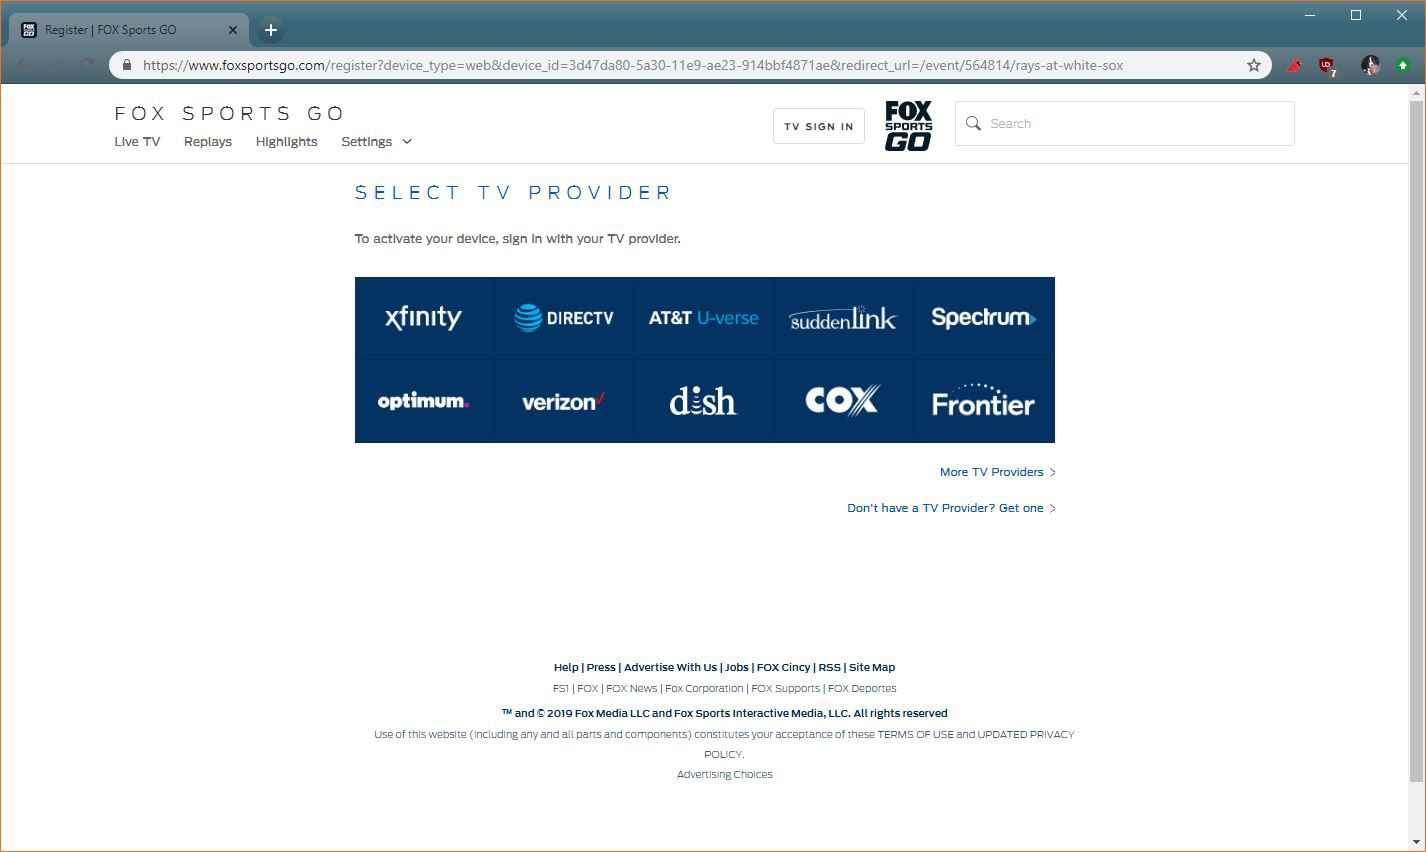 A screenshot of the FOX Sports GO TV provider selection site.